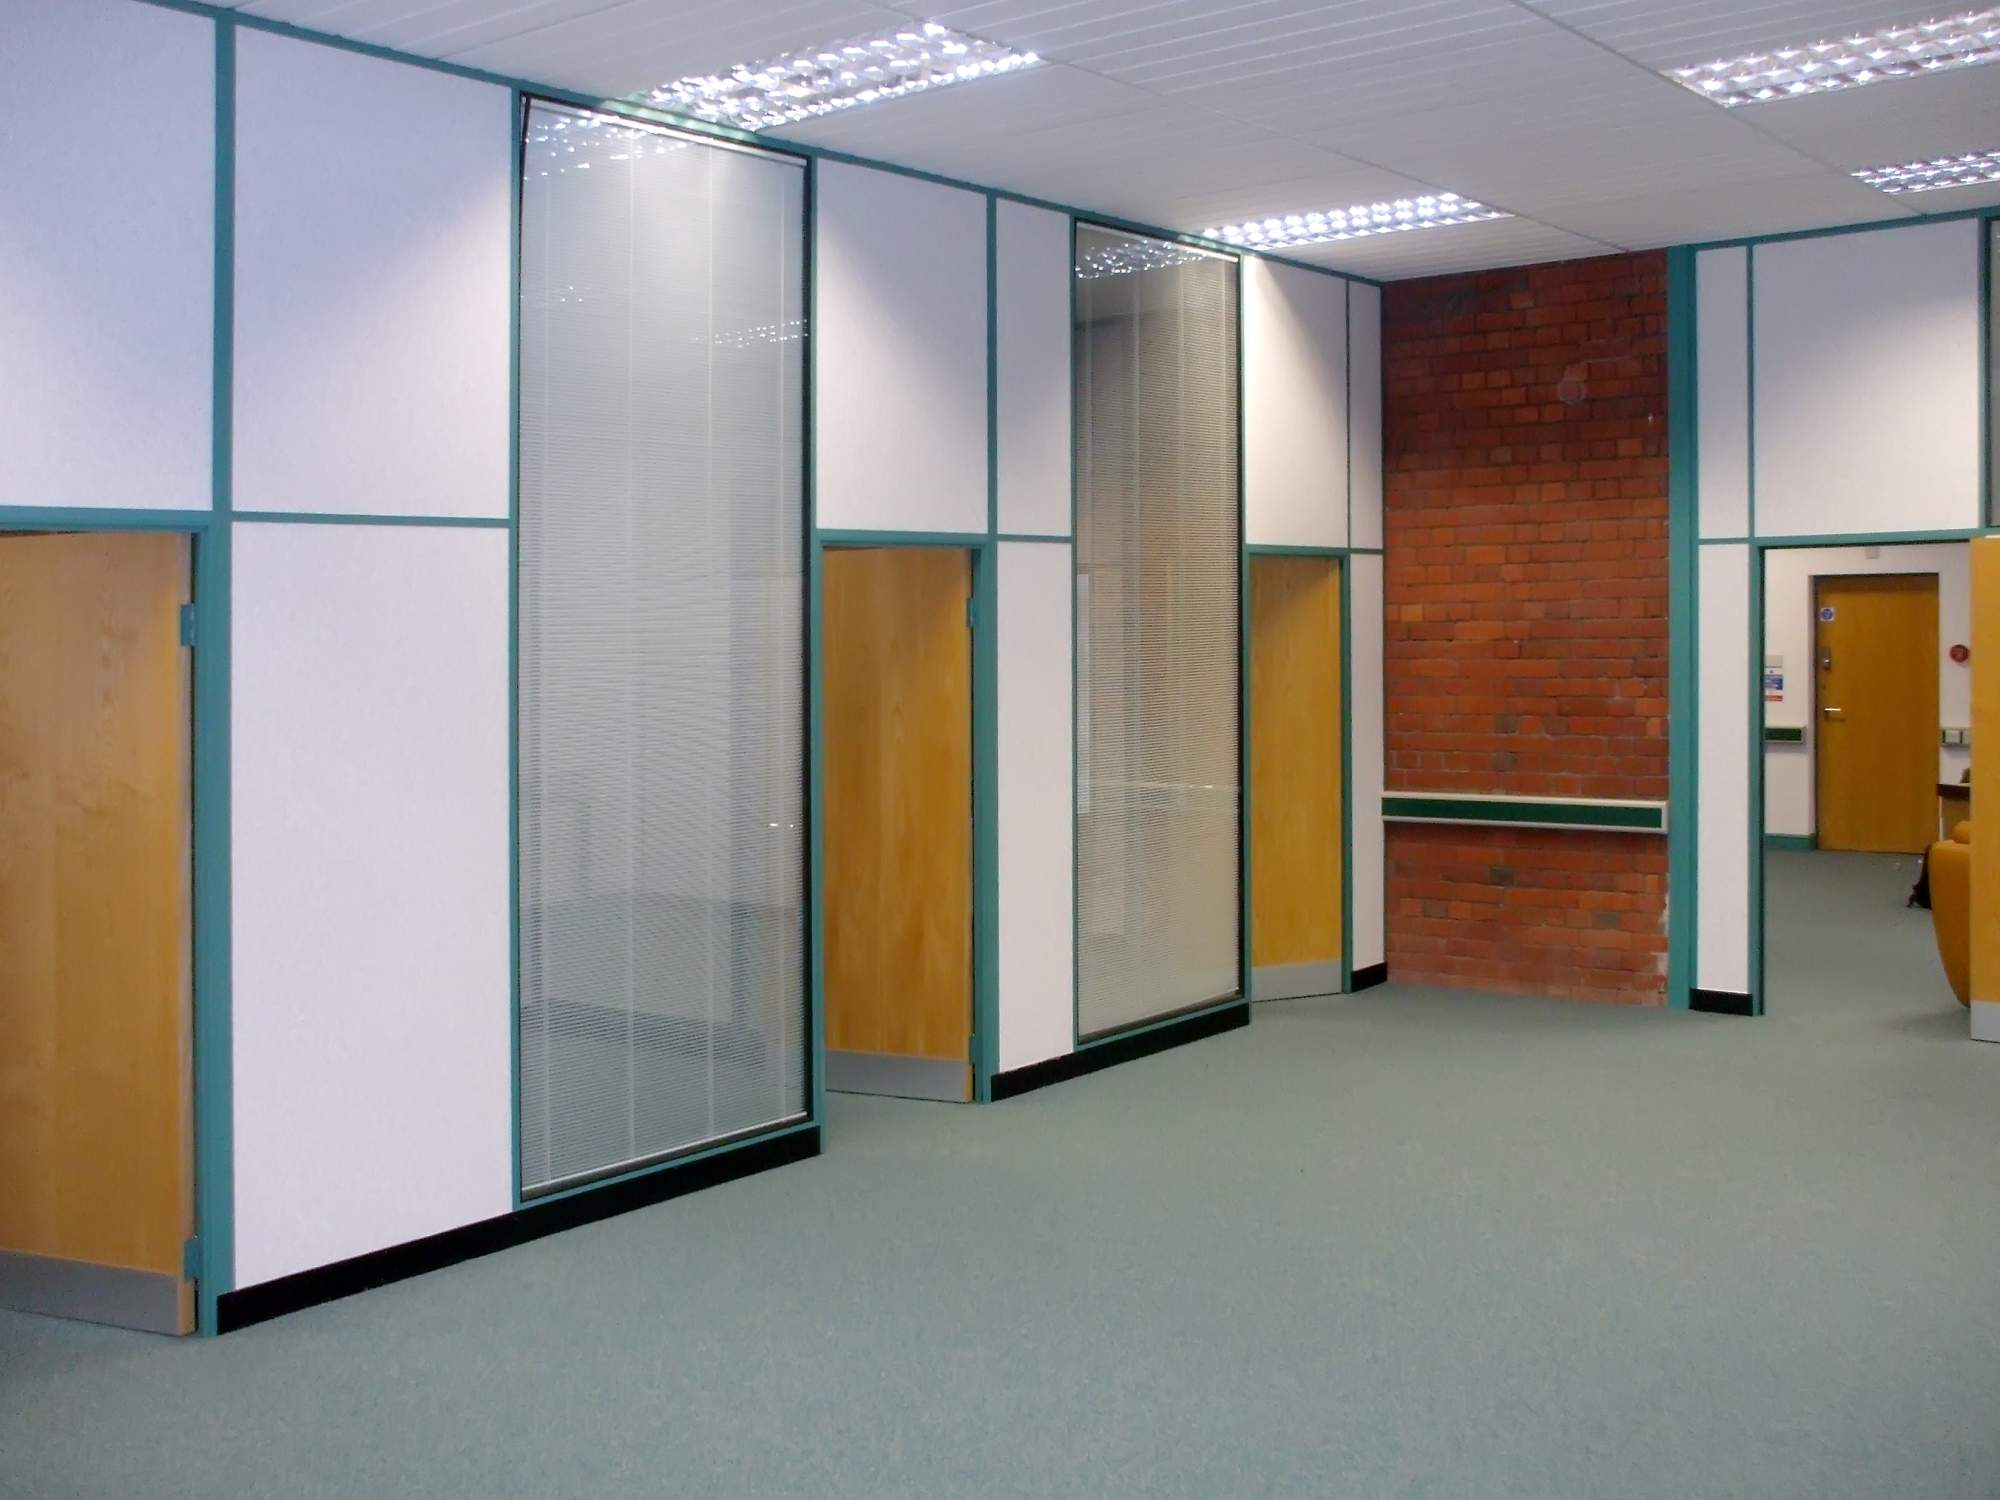 01 - 50mm partitioning forming individual offices with transom at ...